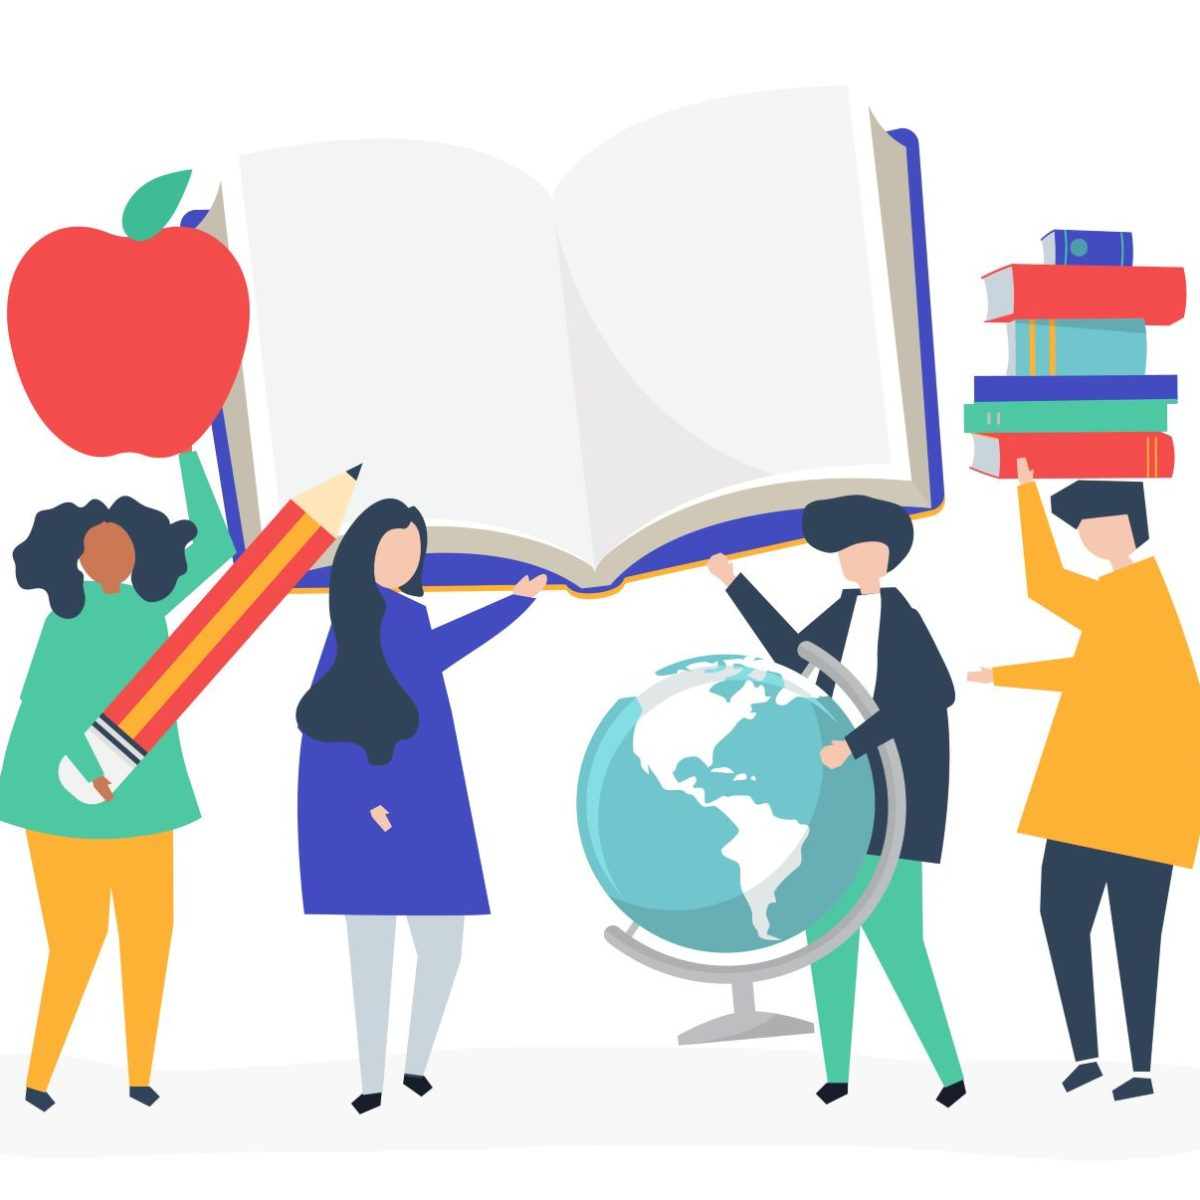 FMGE preparation tips for different learning styles